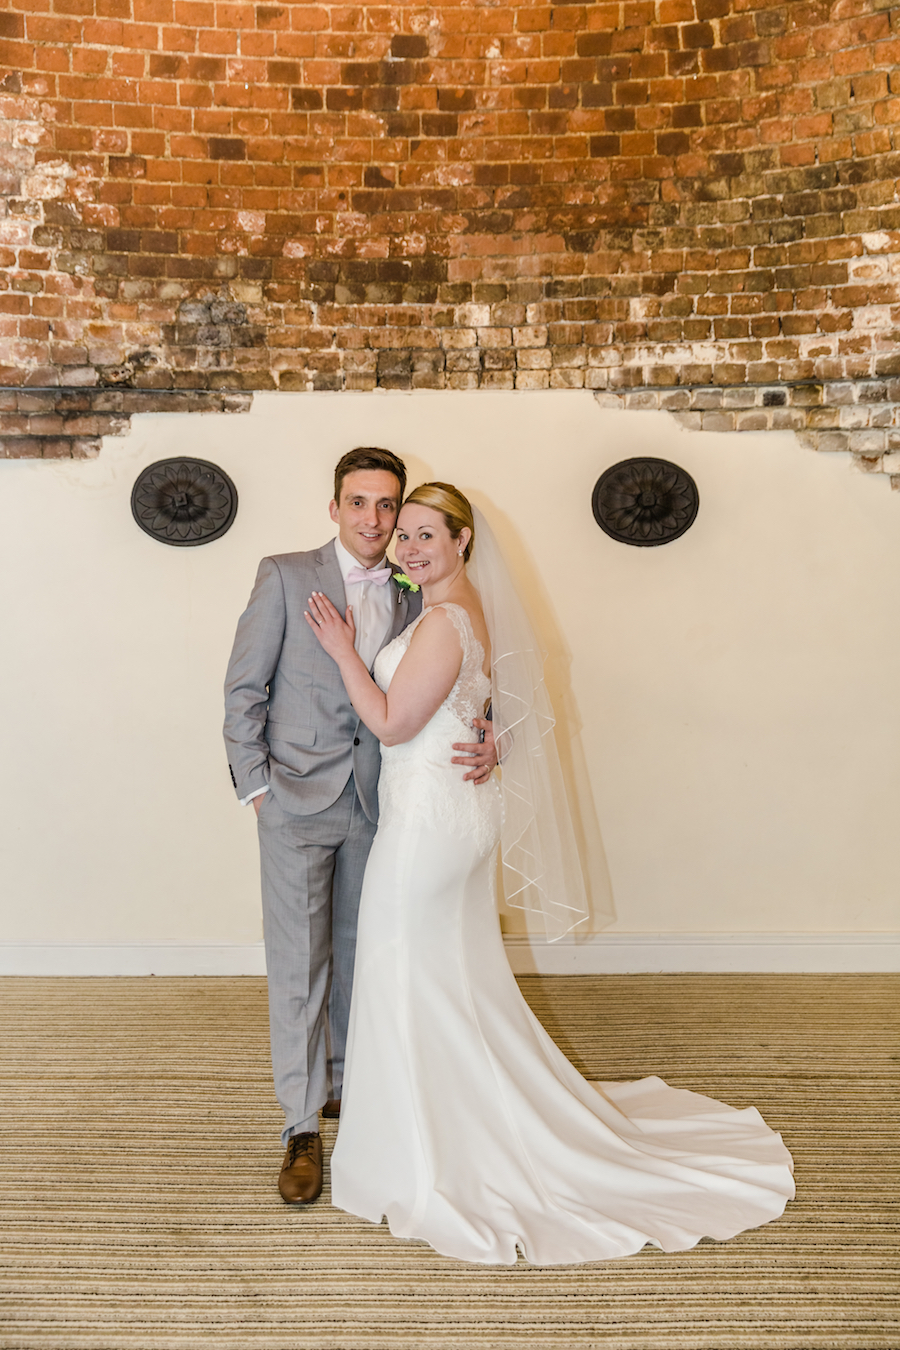 Retro wedding at Kersey Mill, images by Ayshea Goldberg wedding photographer (28)